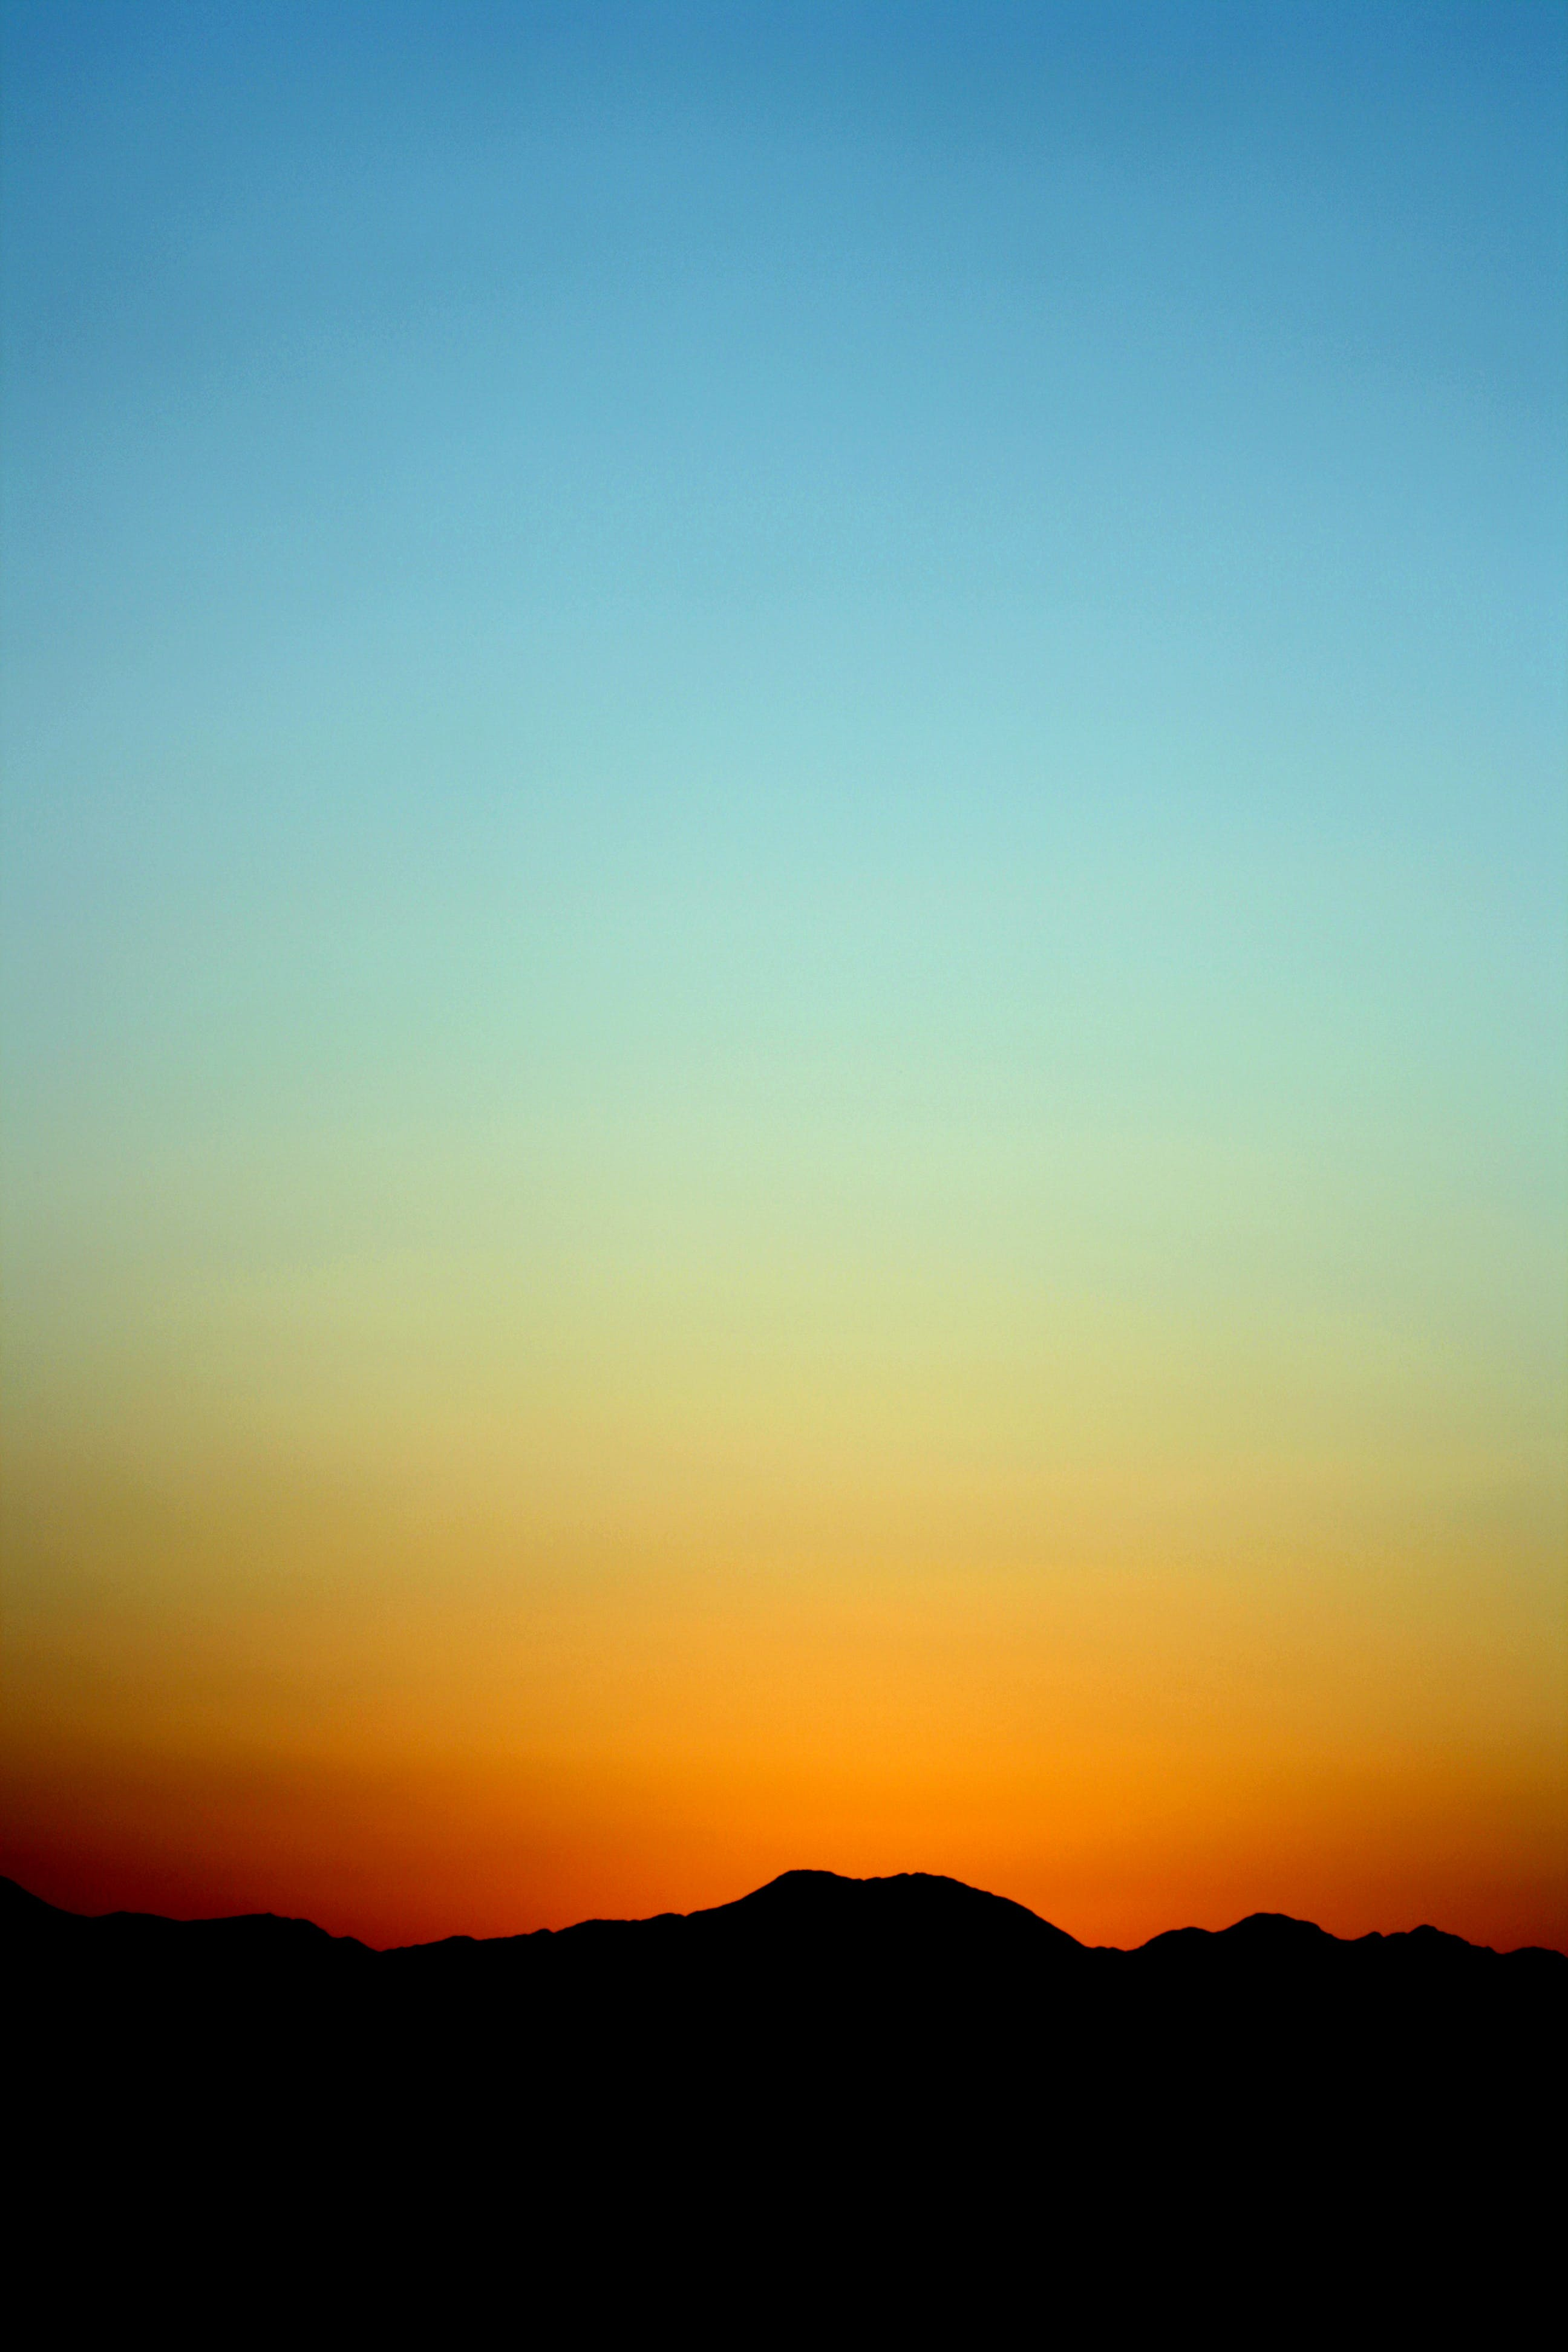 Silhouette of Mountain Under Orange and Blue Sky during Sunset